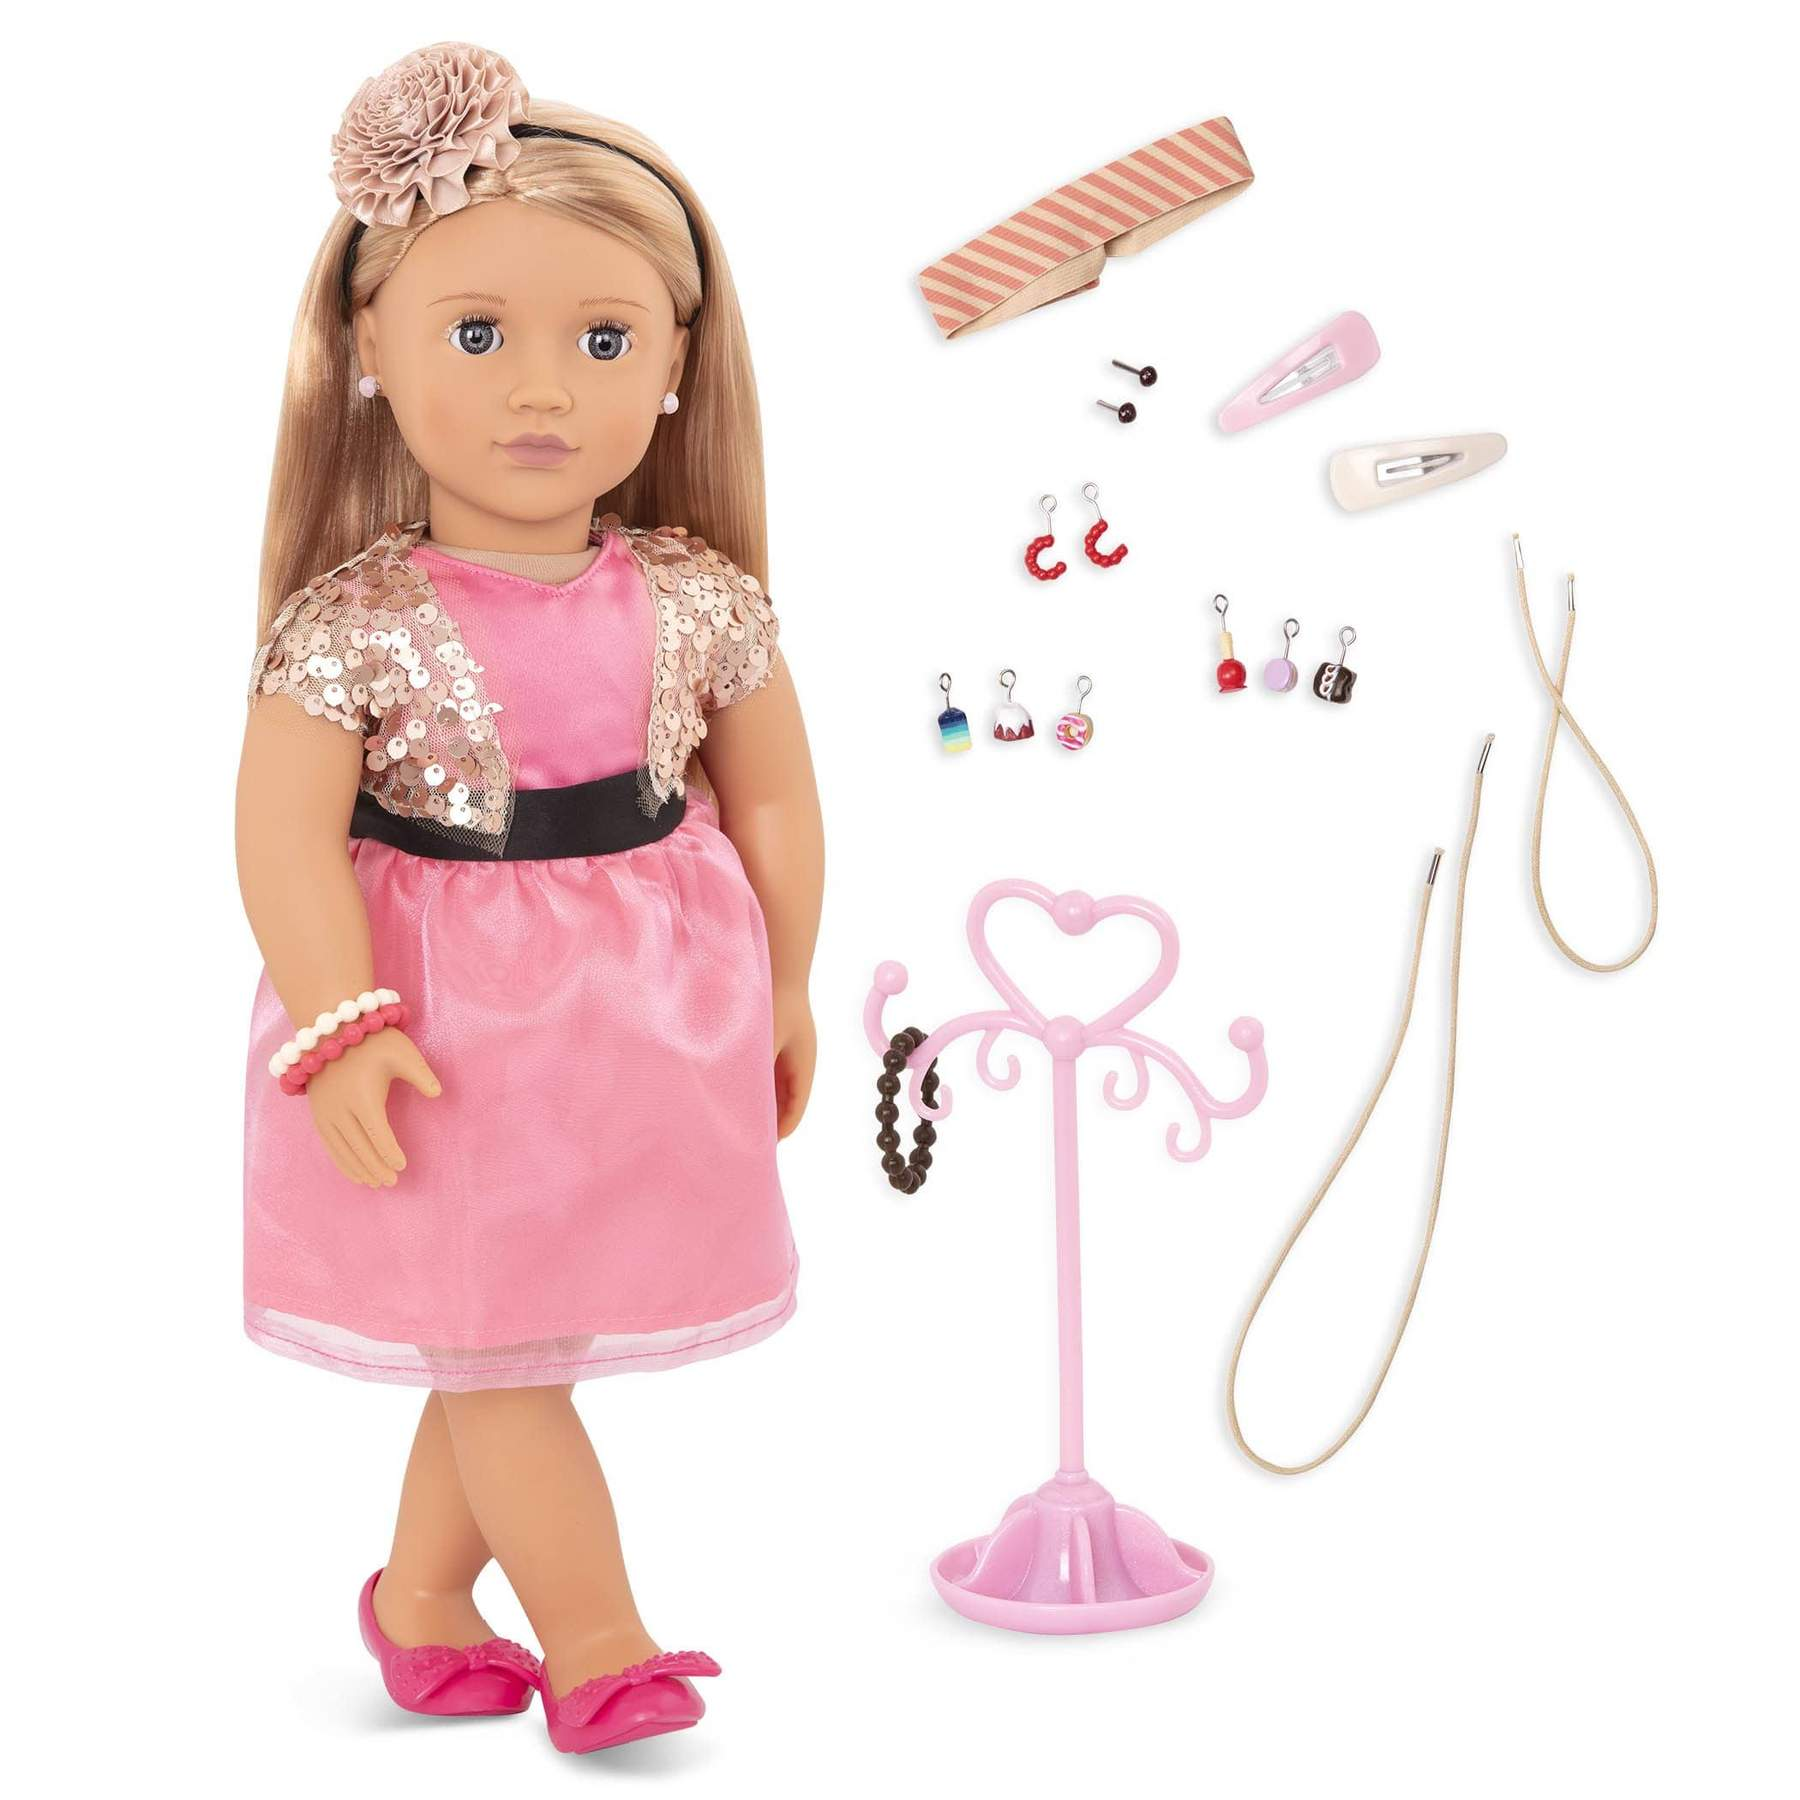 Our Generation - Audra Jewelry Doll (731080)